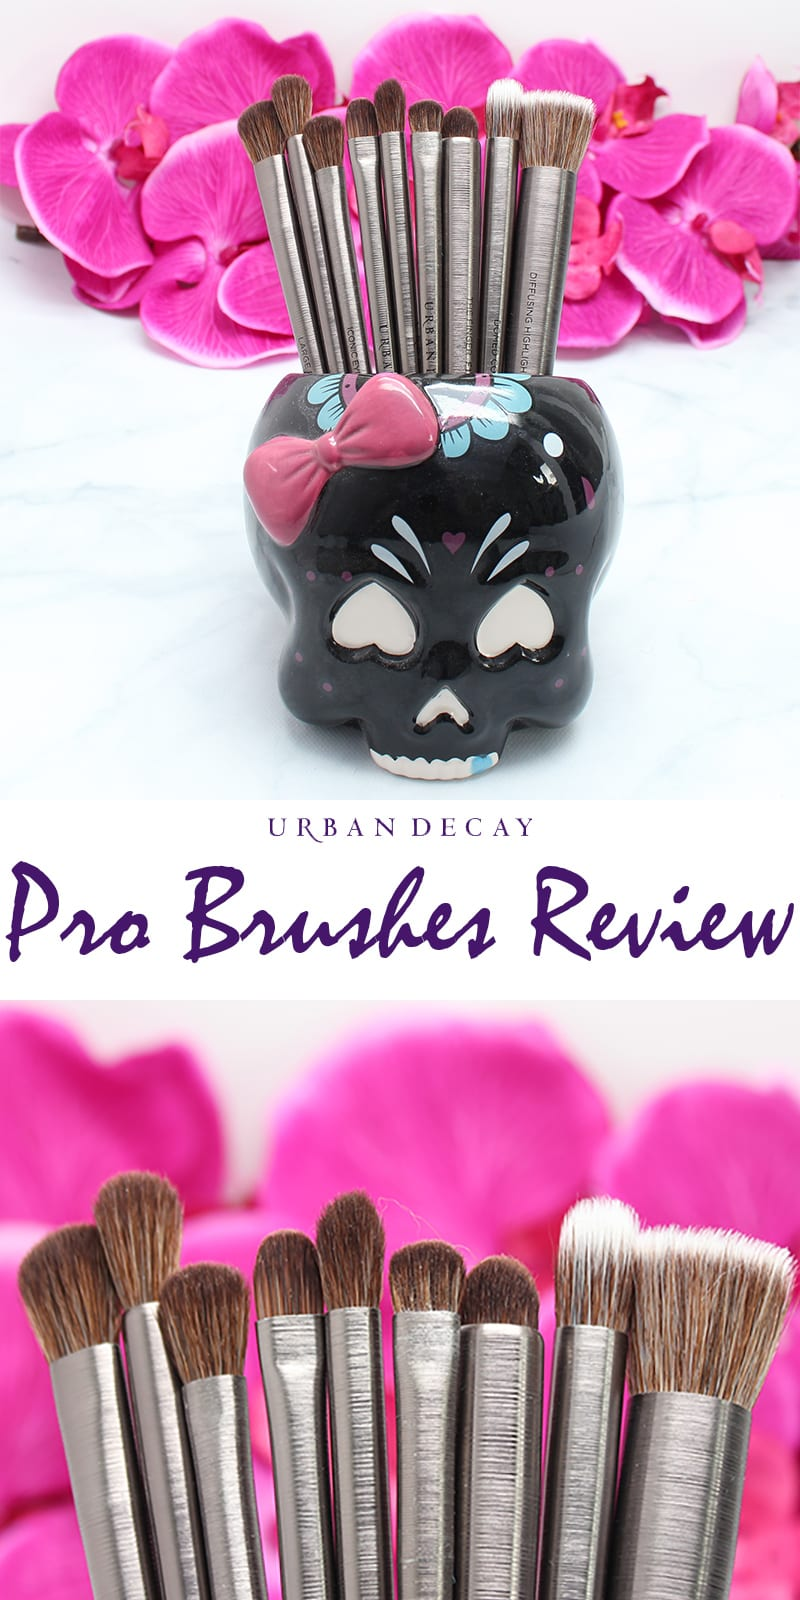 Urban Decay Pro Brushes review and comparison video